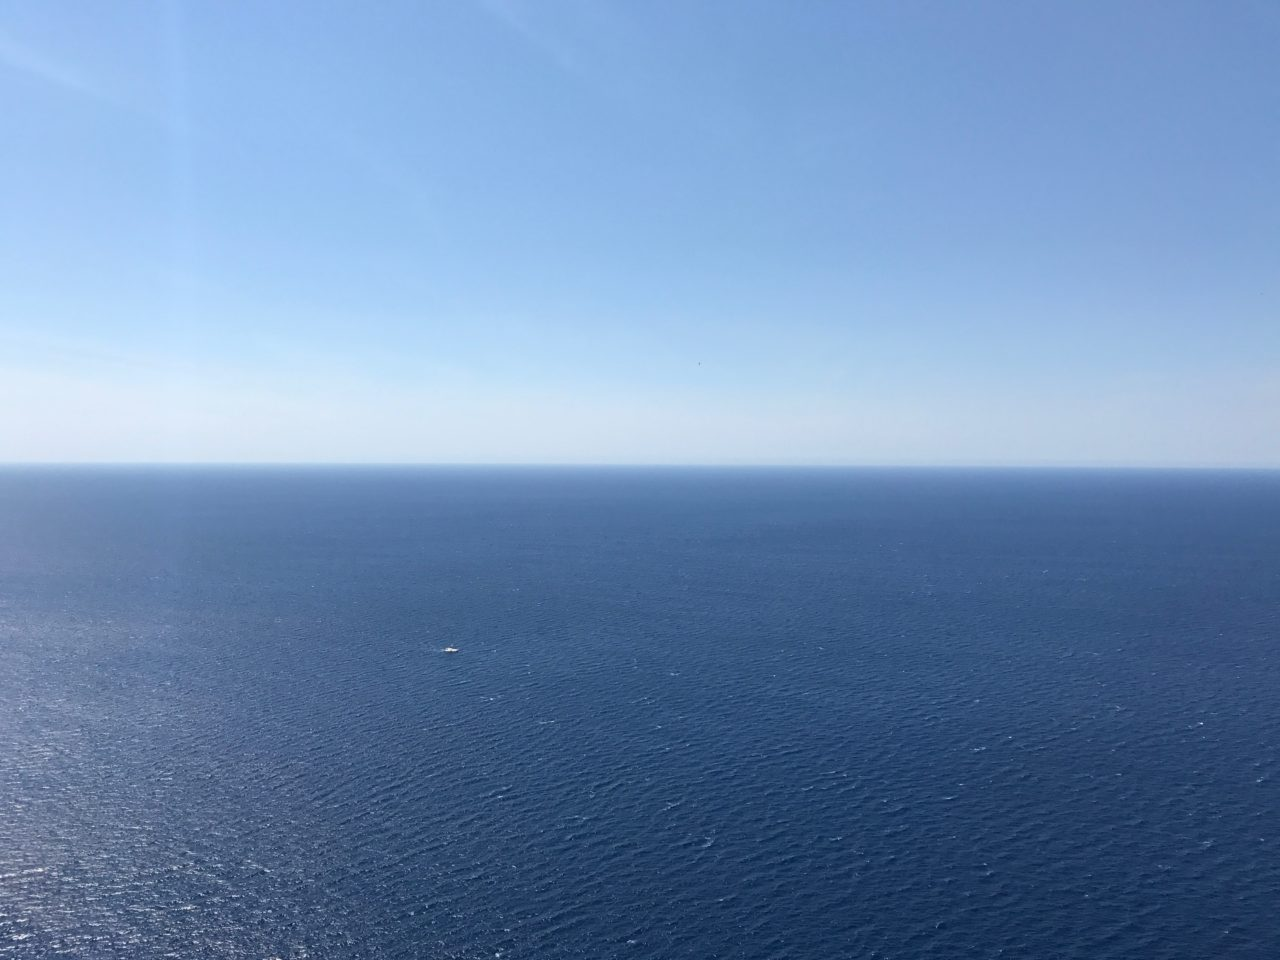 Infinite Blue Ocean View Of Sky And Water